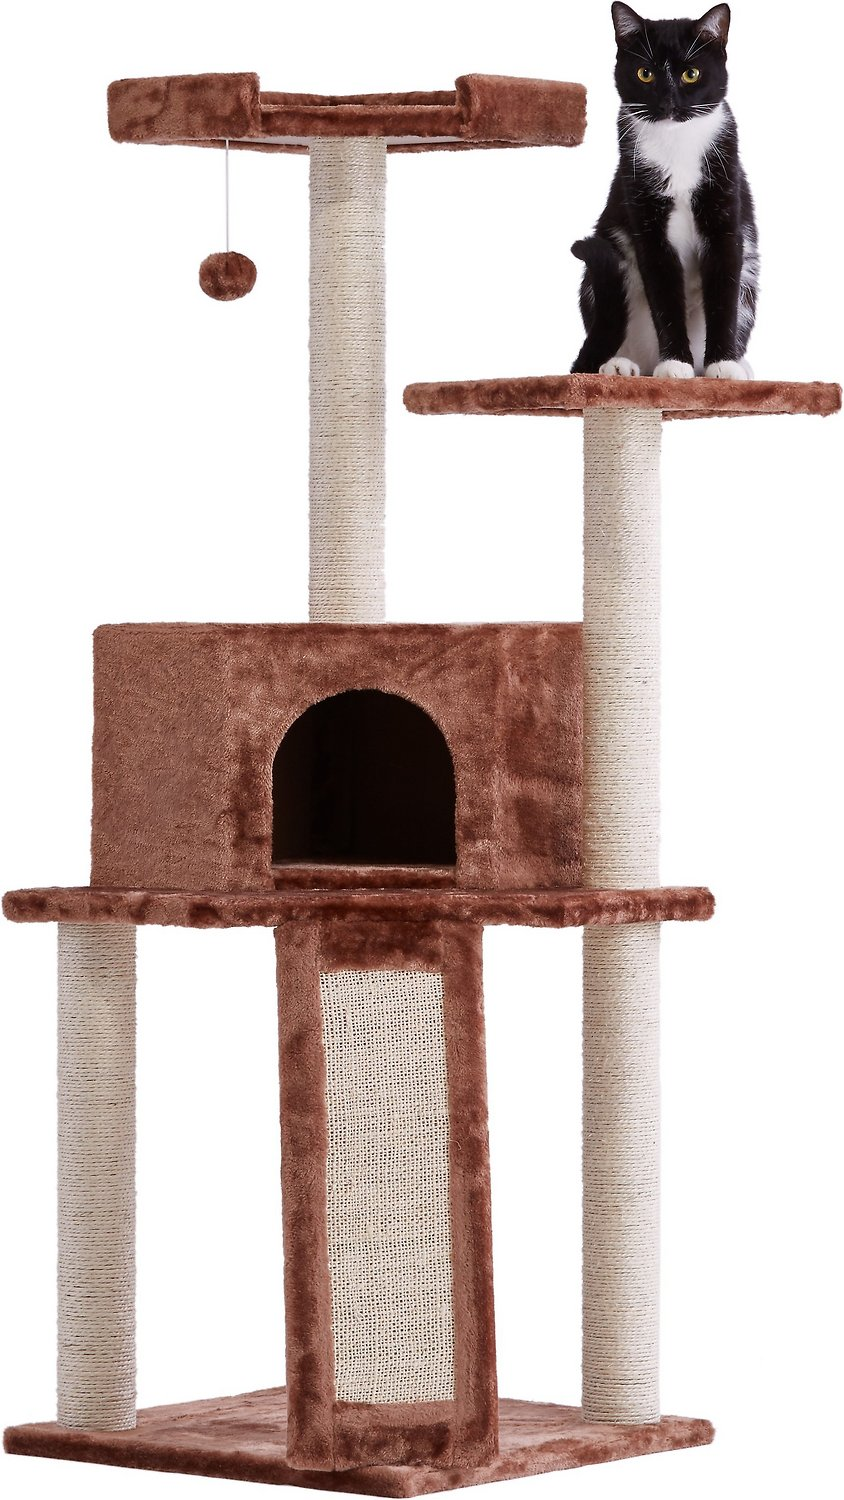 Communication on this topic: Frisco 72-in Cat Tree, Large Base, Brown, frisco-72-in-cat-tree-large-base-brown/